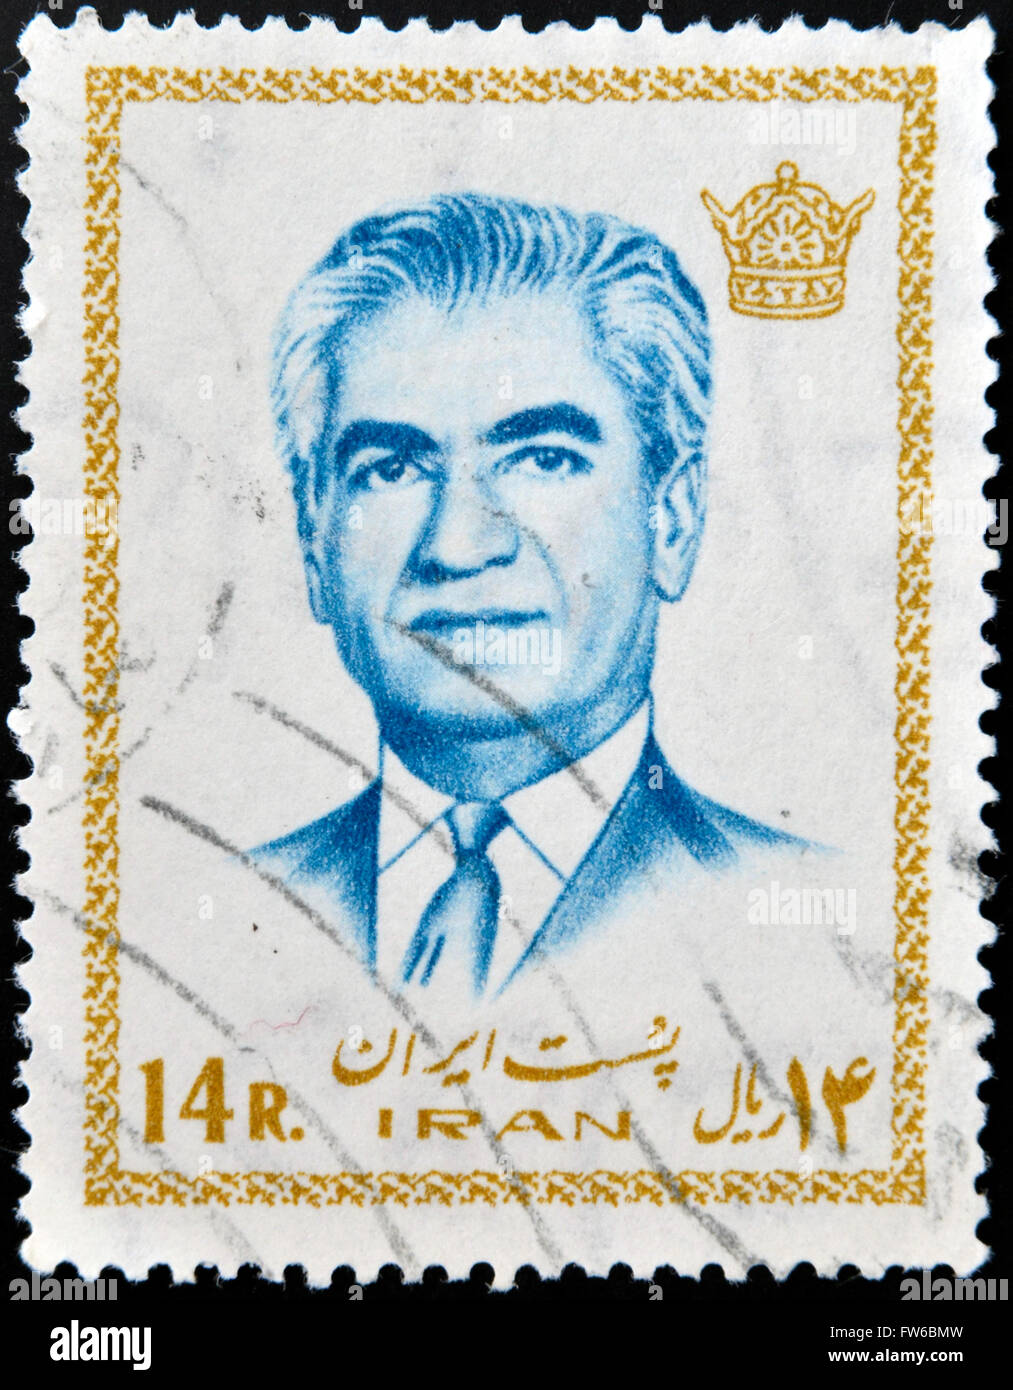 IRAN - CIRCA 1972: A stamp featuring Mohammad Reza Pahlavi, the last Shah before the 1979 Iranian revolution, circa - Stock Image